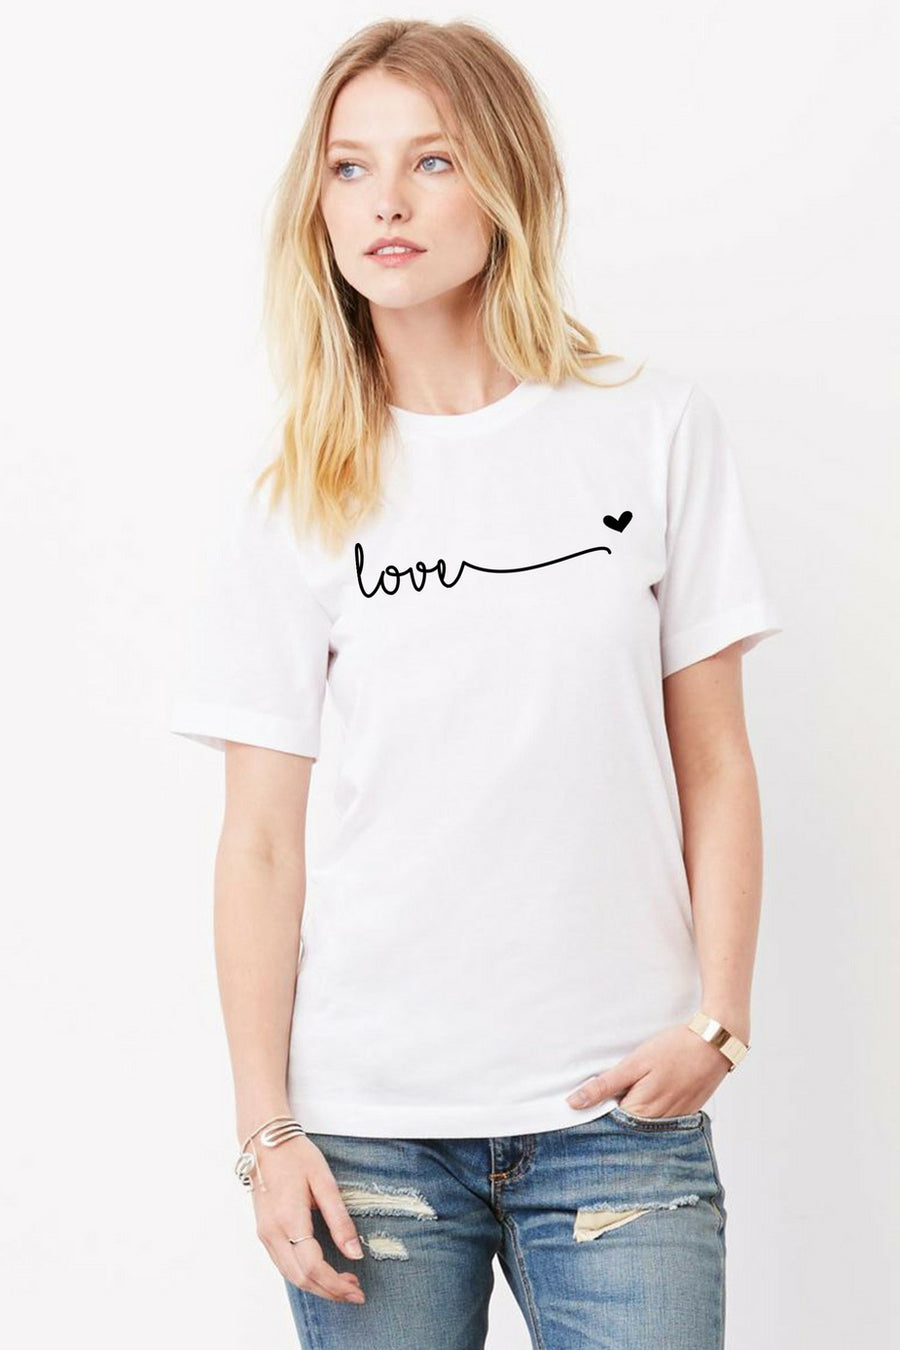 Six + Row Love Gray Tee